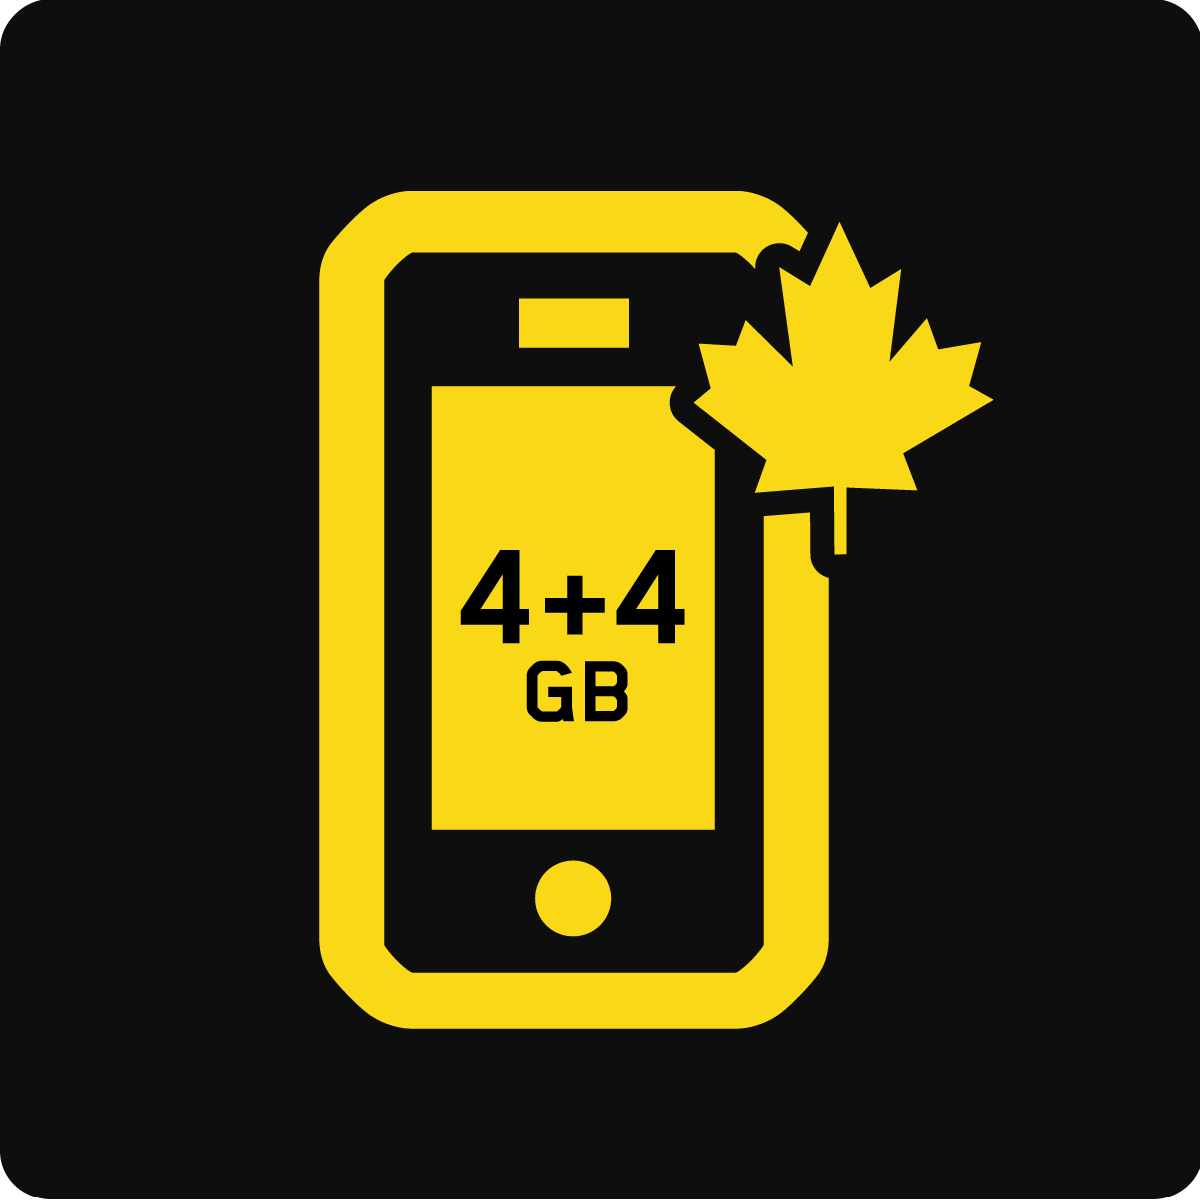 Canada 4 GB Business Mobile plan